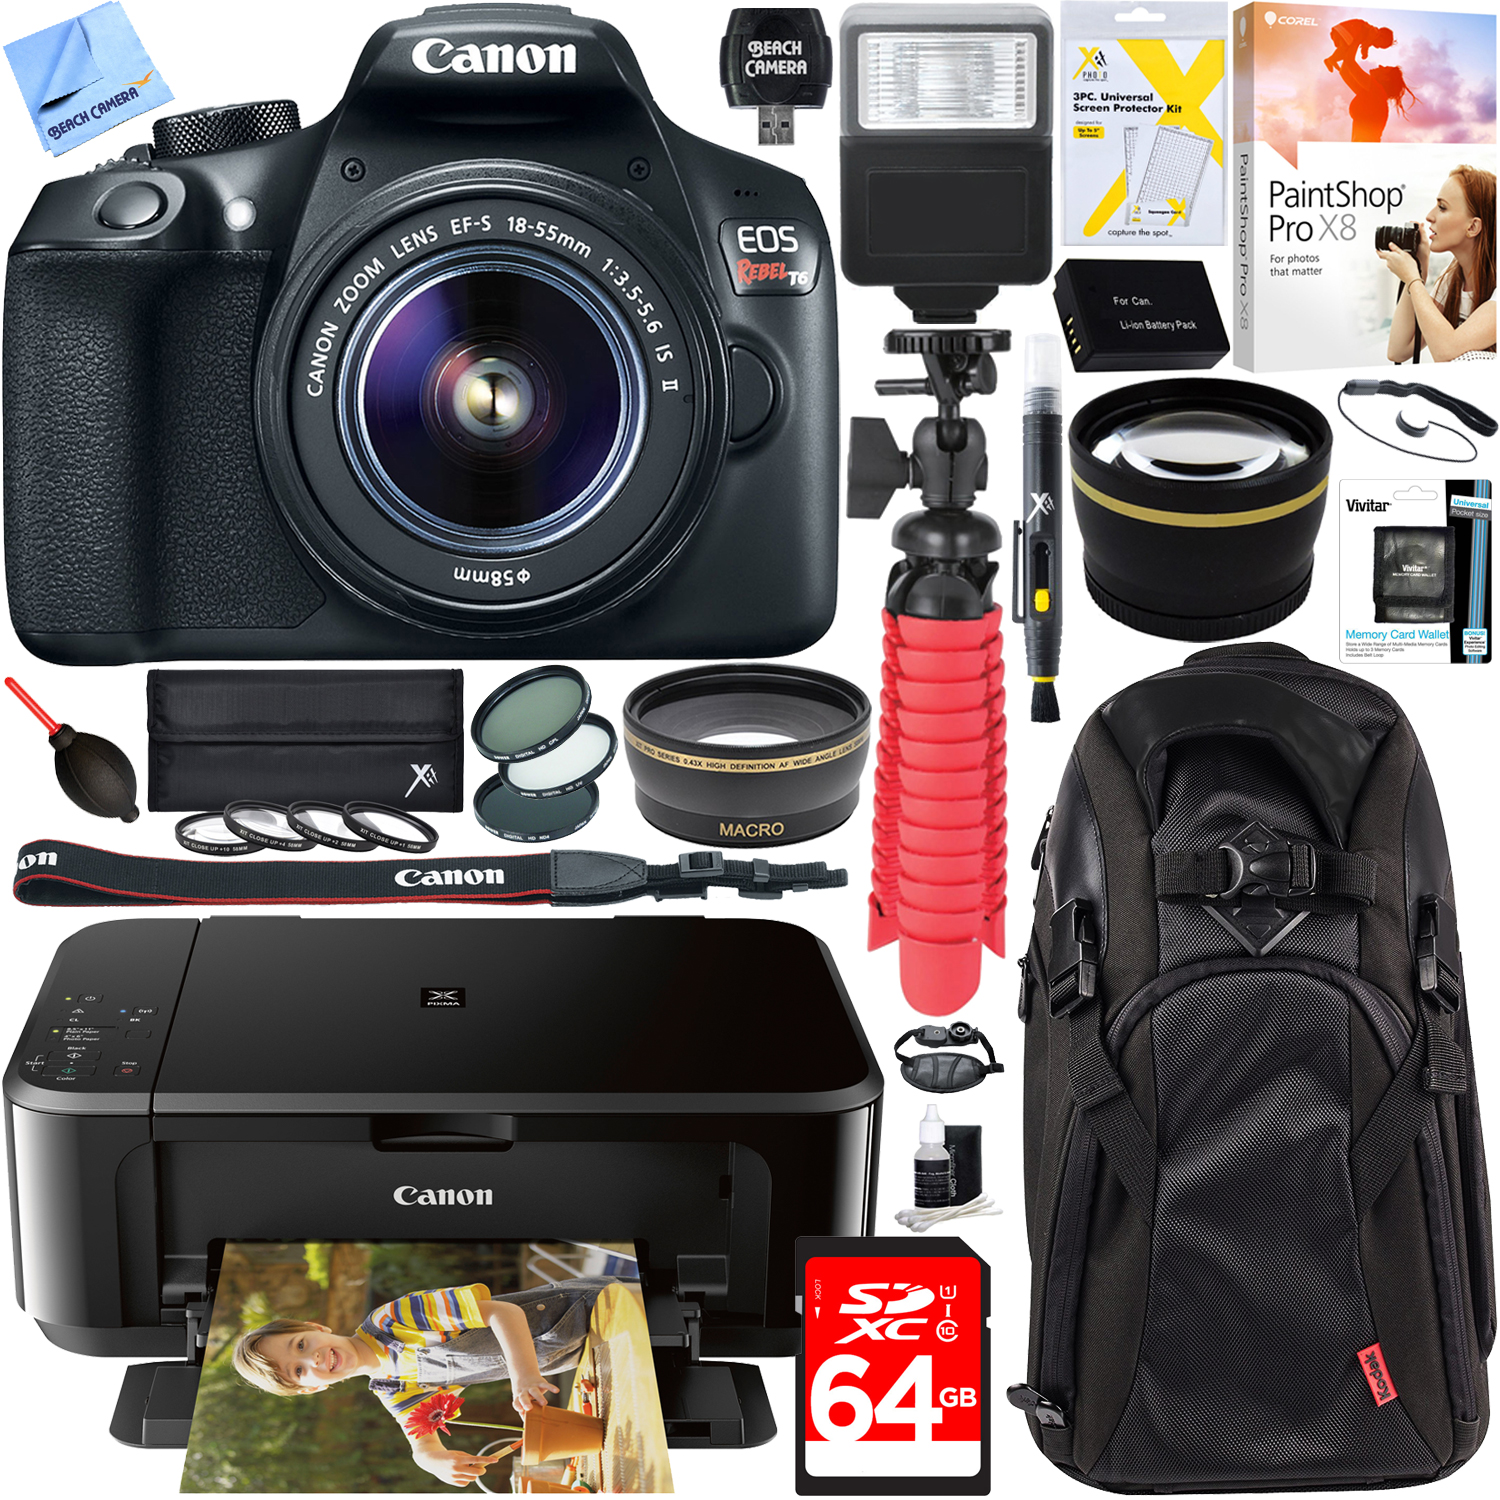 Canon EOS Rebel T6 Digital SLR Camera with EF-S 18-55mm IS